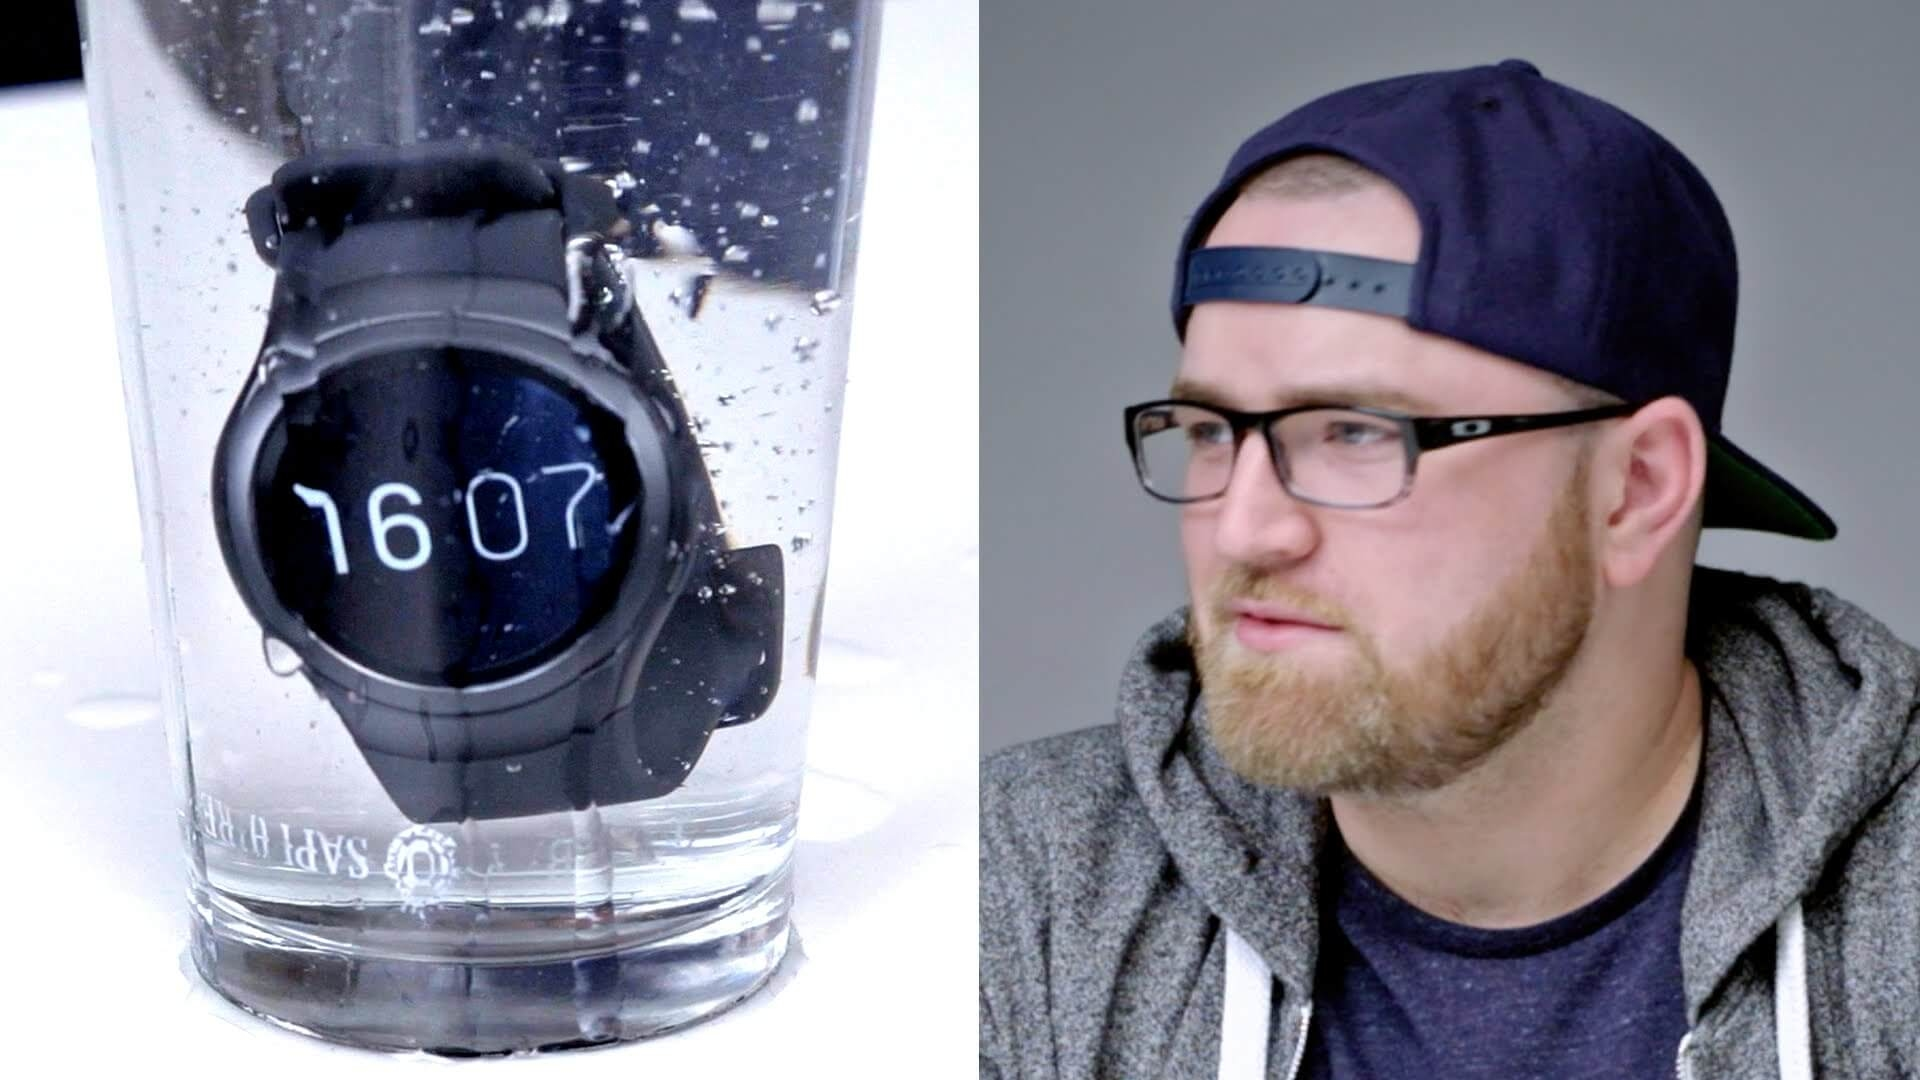 Samsung Gear S2 Hands On + Liquid Test